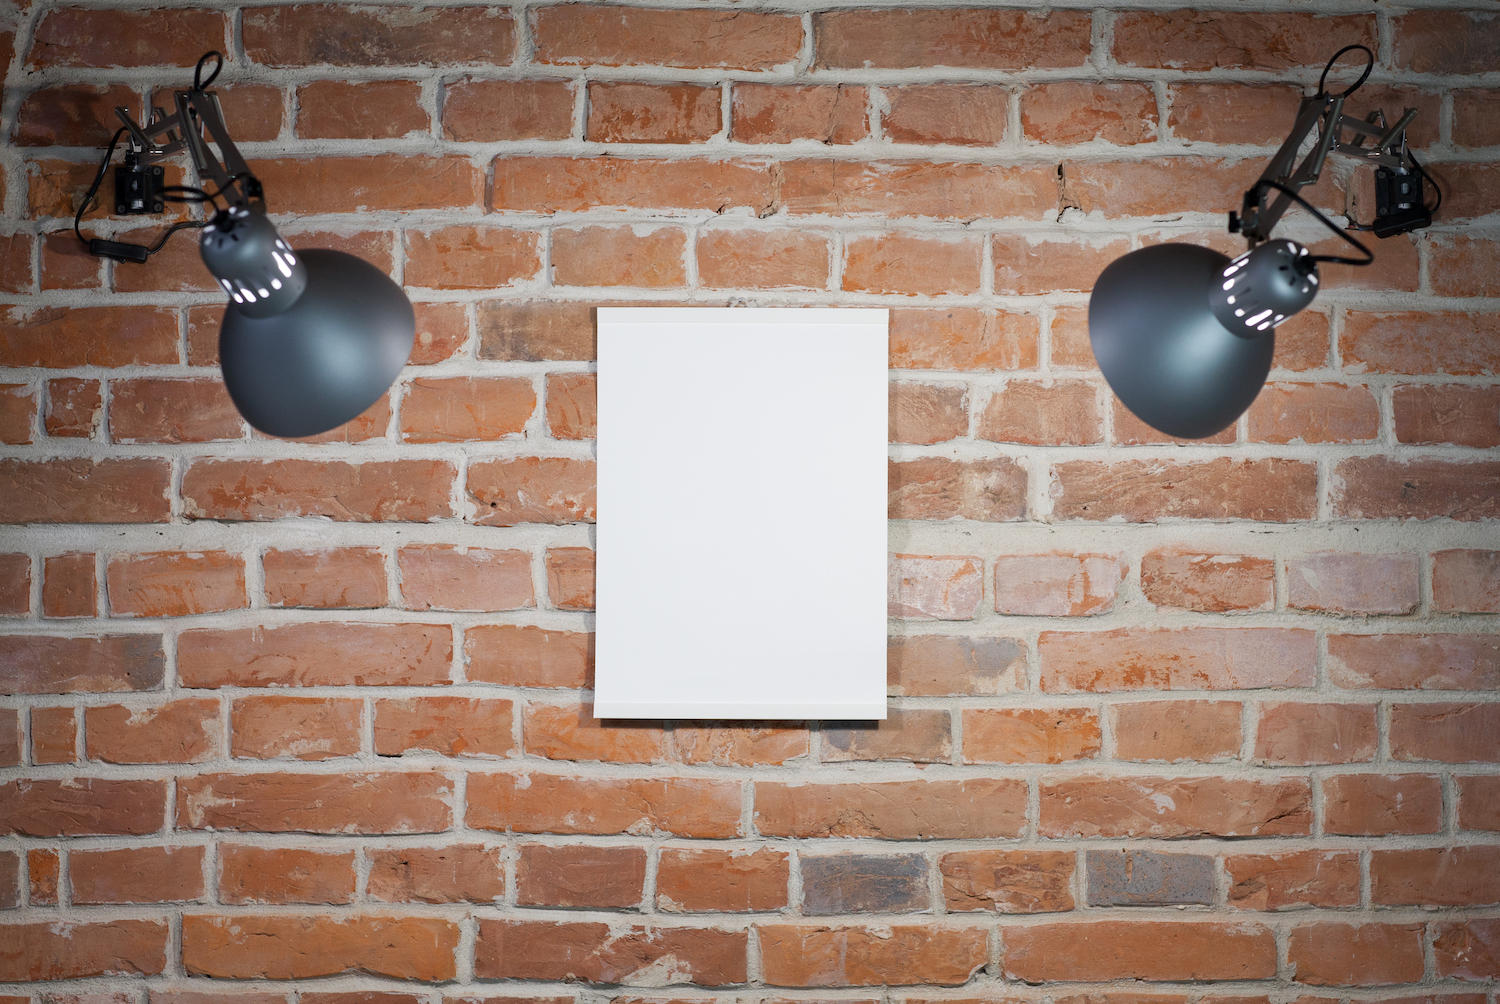 Blank poster on the wall example image 1